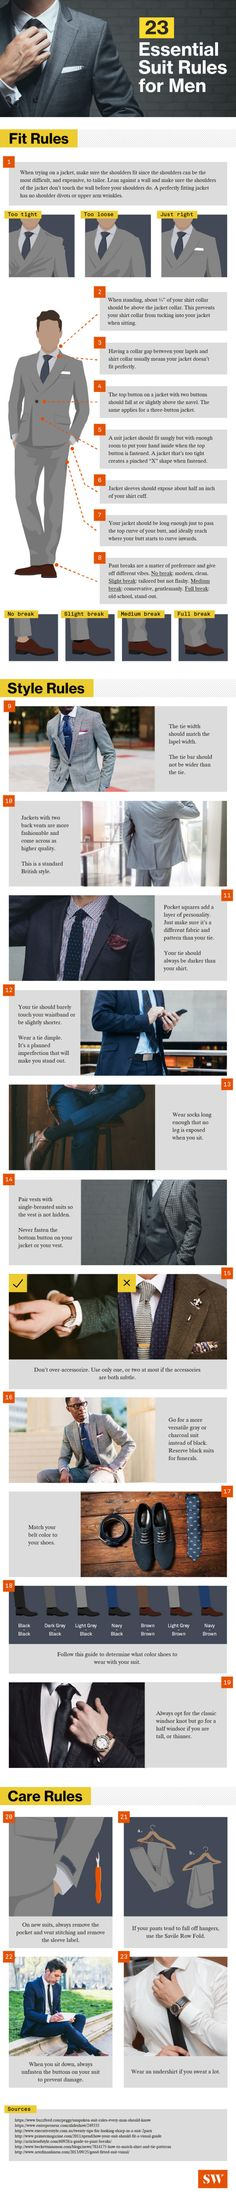 23 essential suit rules for men [infographic]